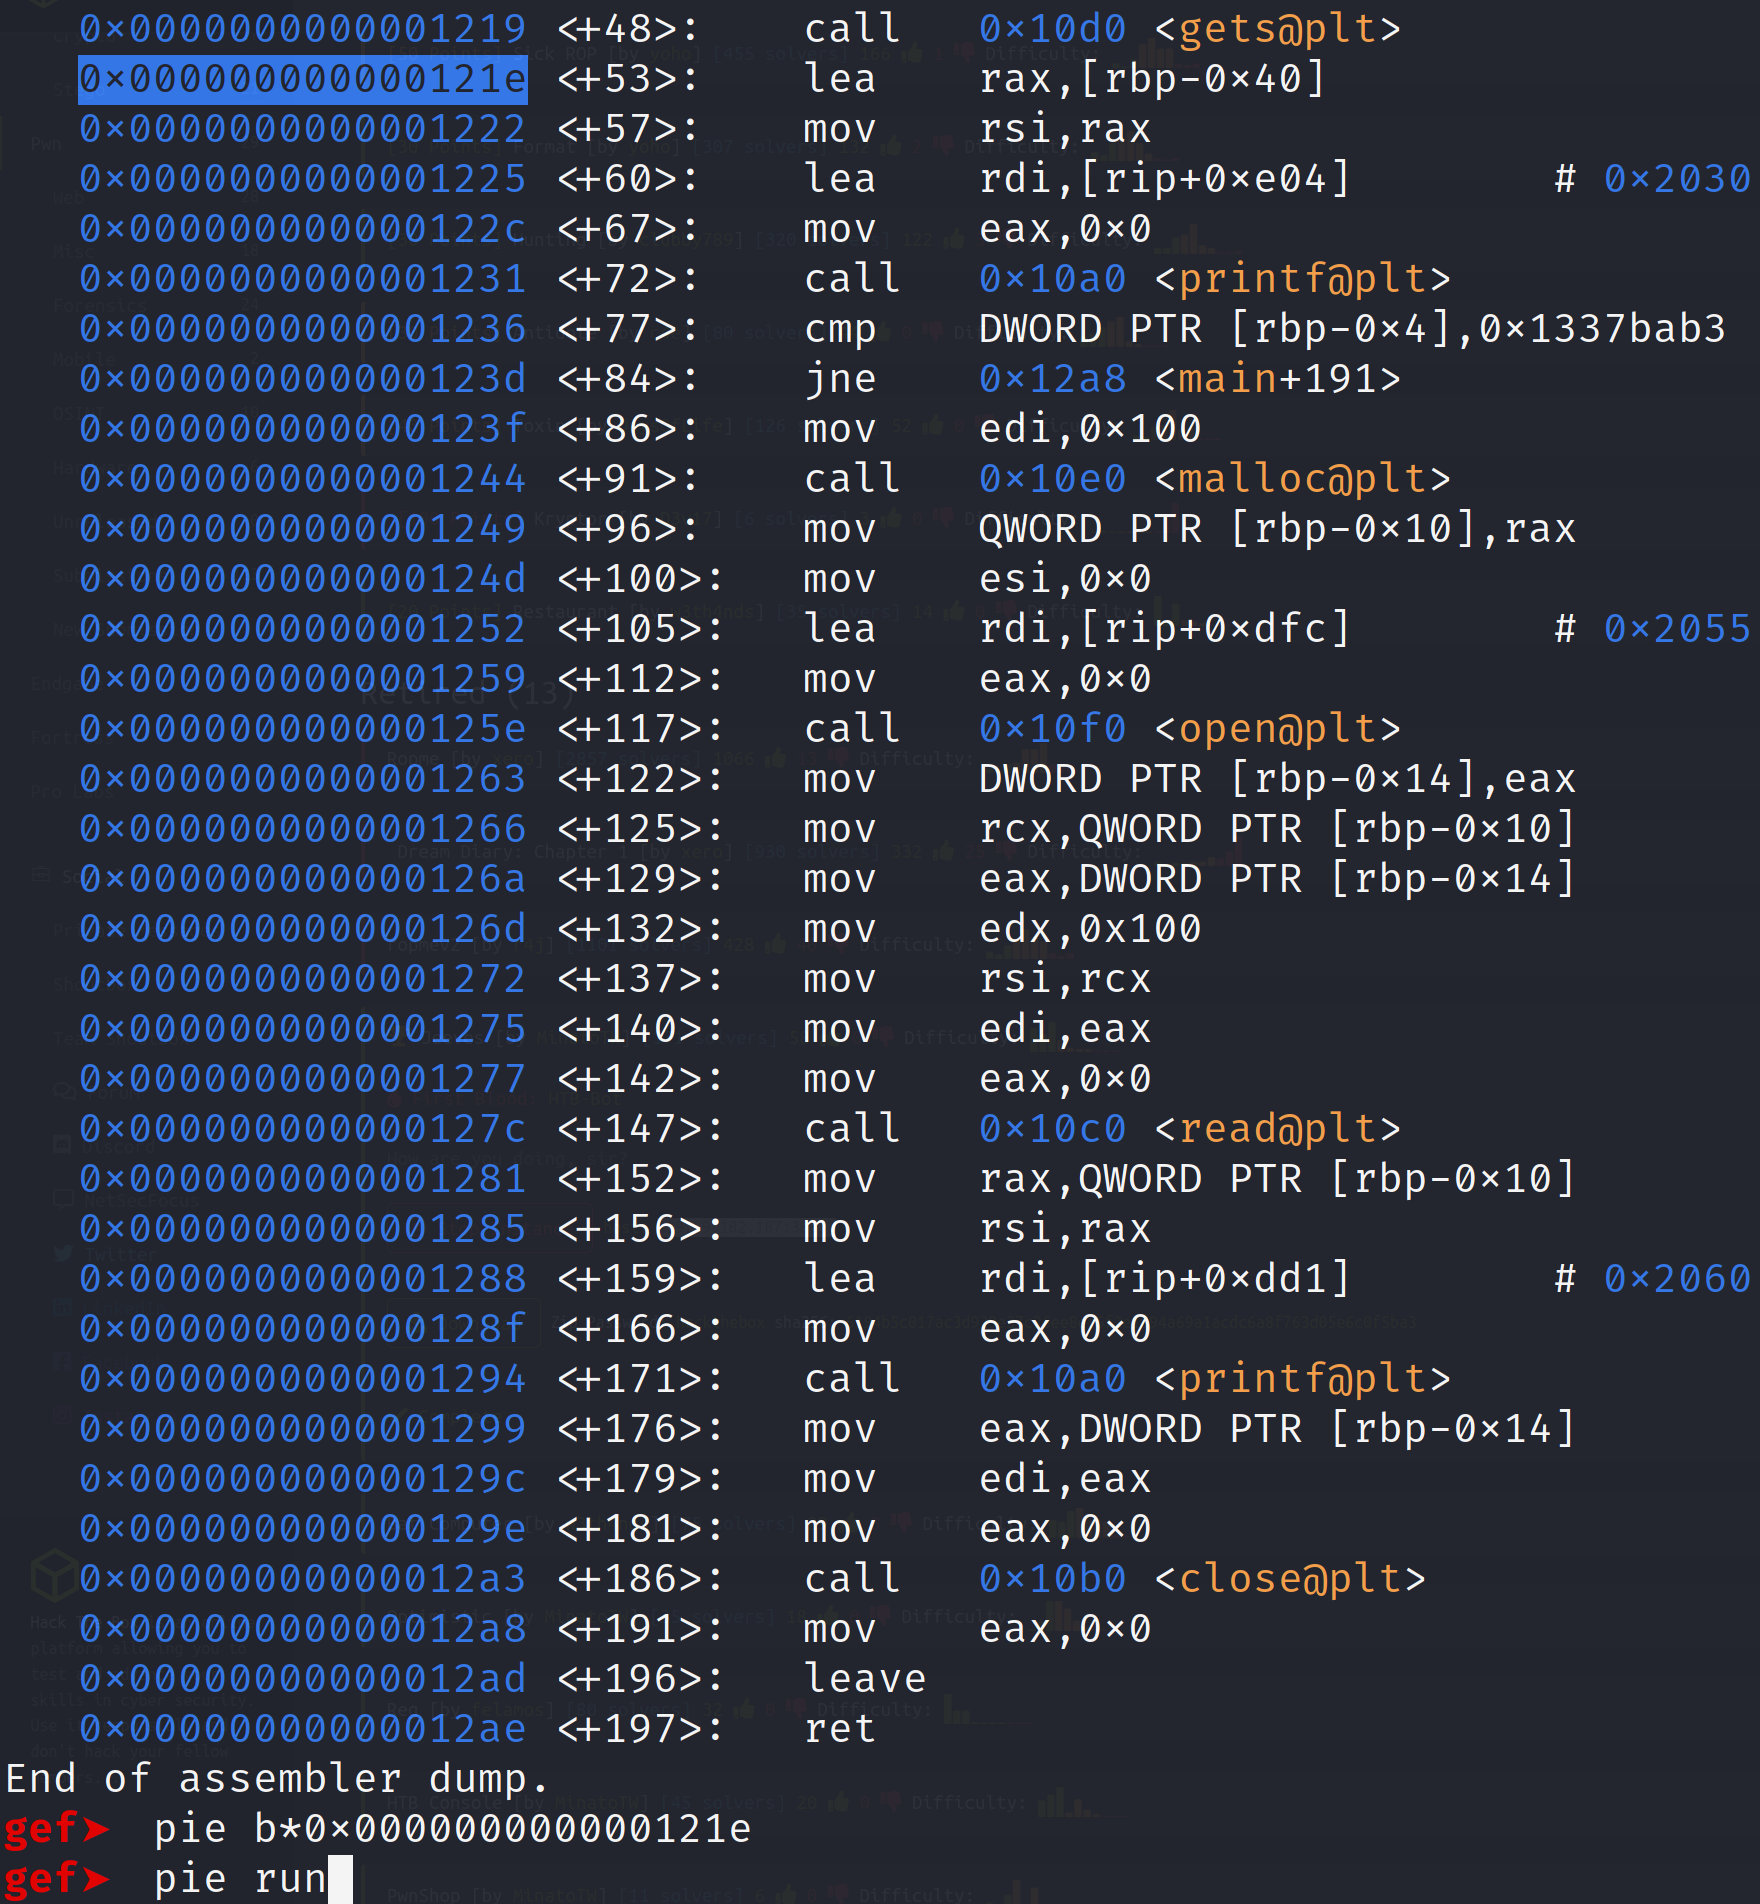 Setting a pie breakpoint and running the binary